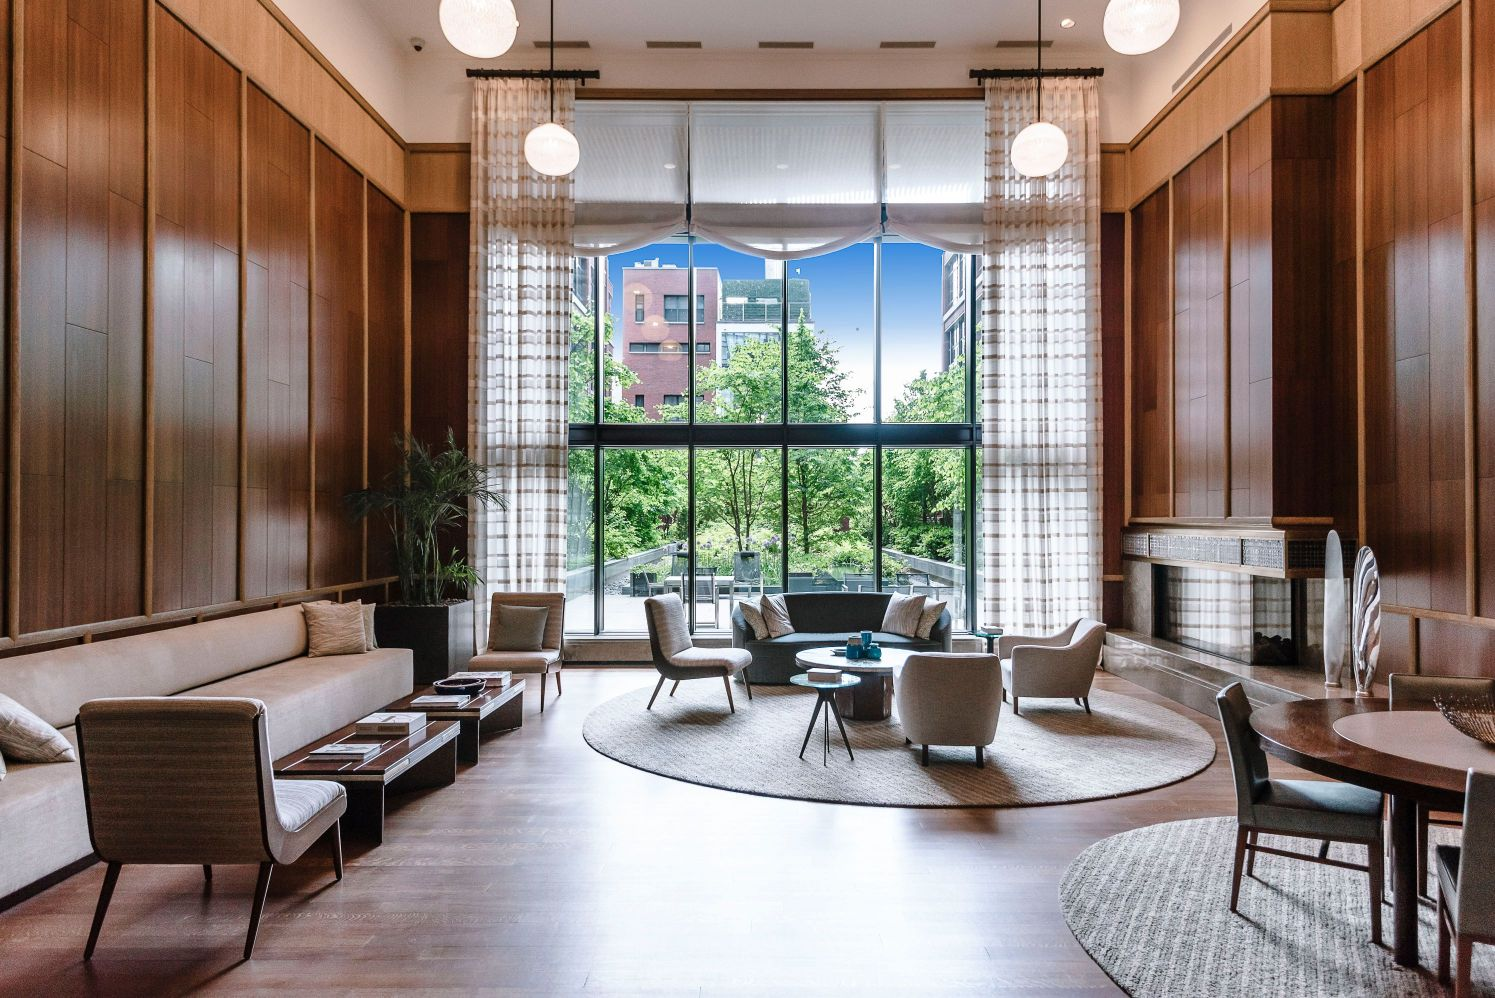 American Rocker Jon Bon Joviu0027s Duplex Apartment In Downtown Manhattan, New  York Has Been Listed For $17.25 Million, Mansion Global Reported.